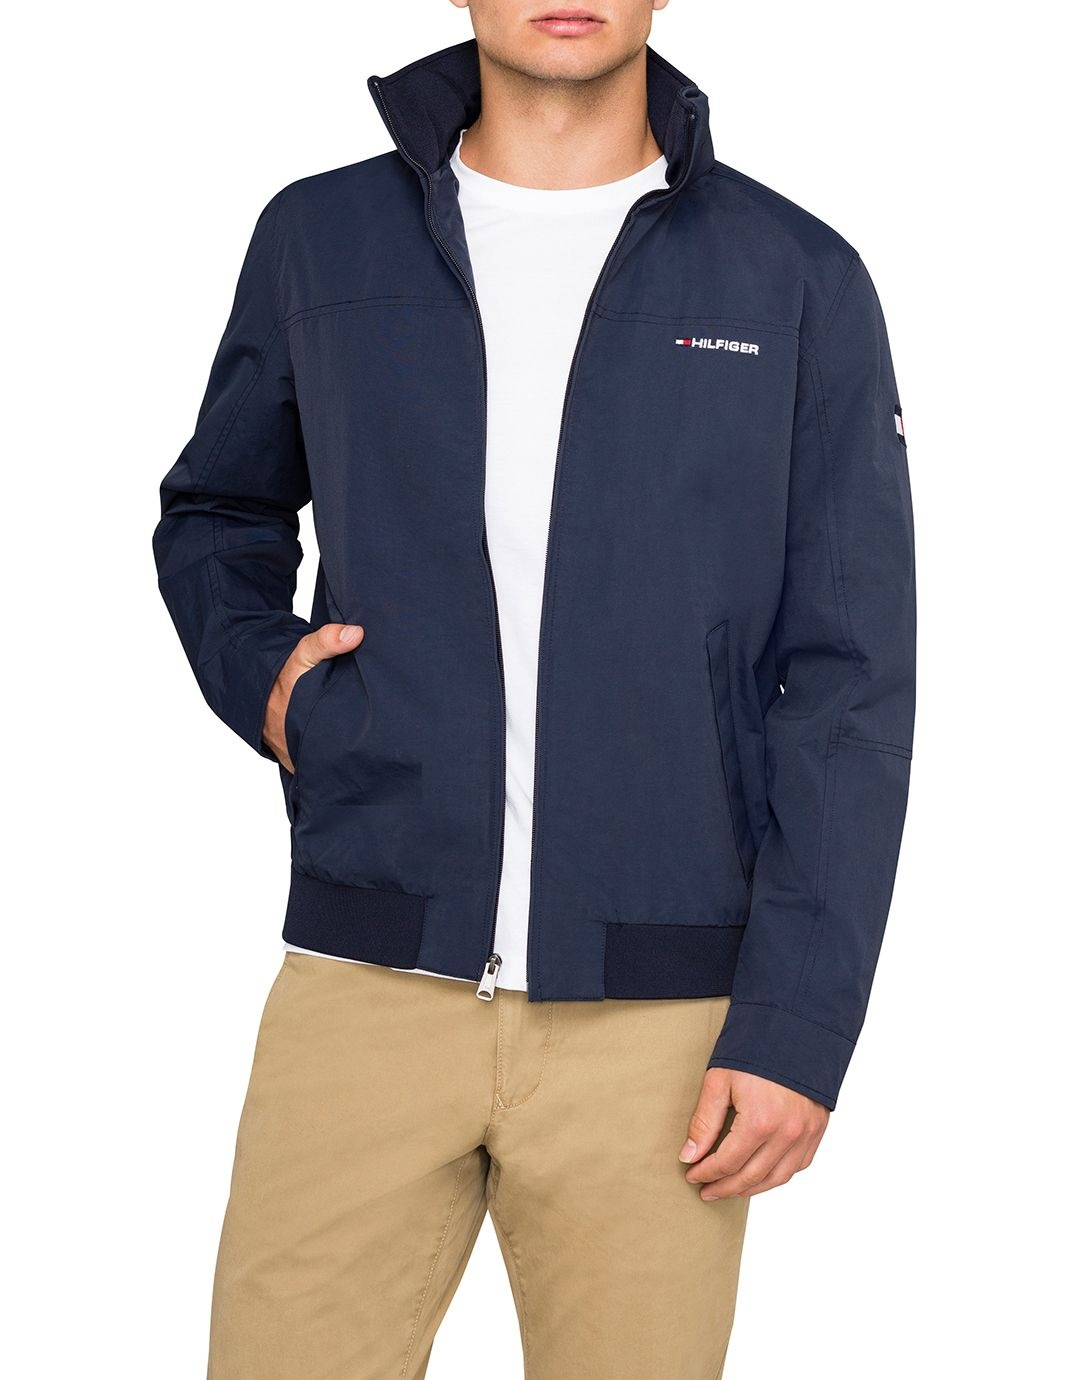 tommy hilfiger yacht jacket myer online. Black Bedroom Furniture Sets. Home Design Ideas